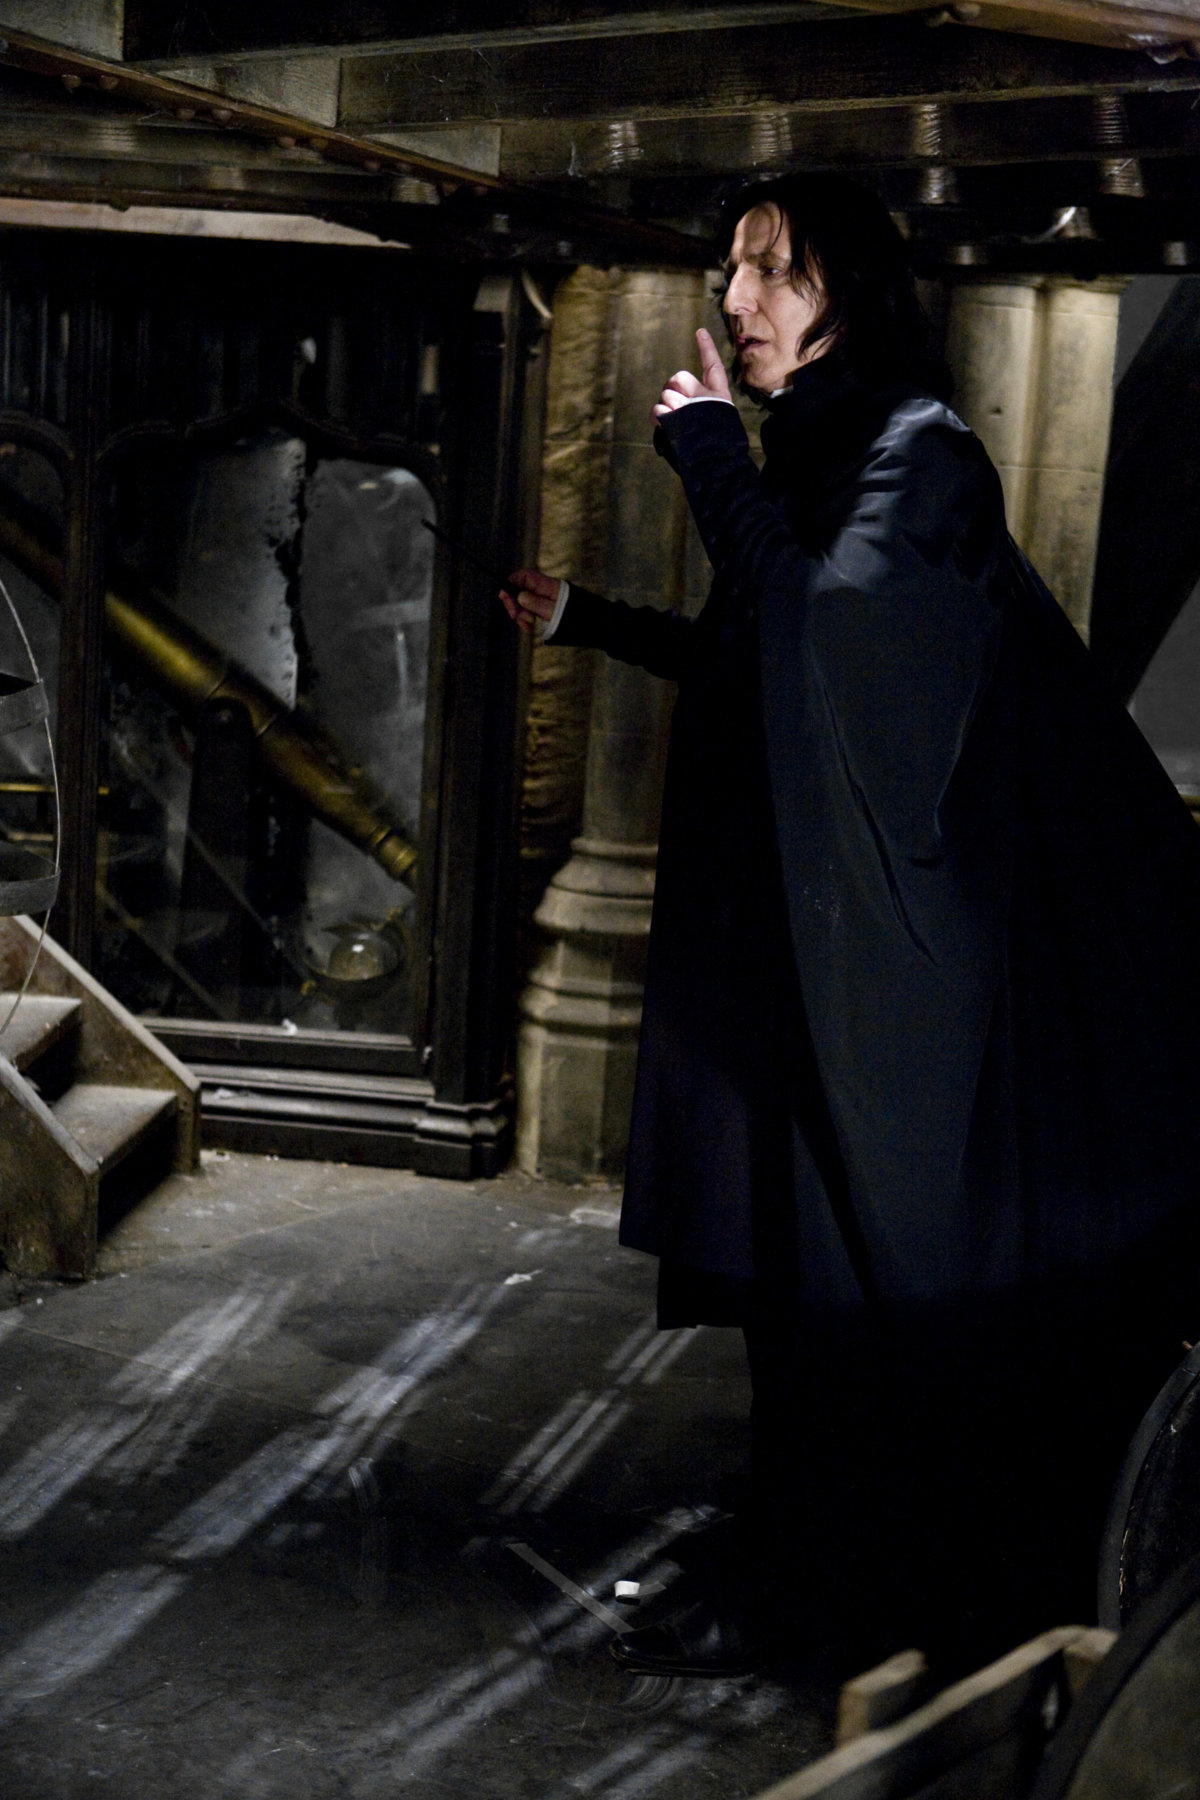 8 times the Half-Blood Prince reveals the real Snape